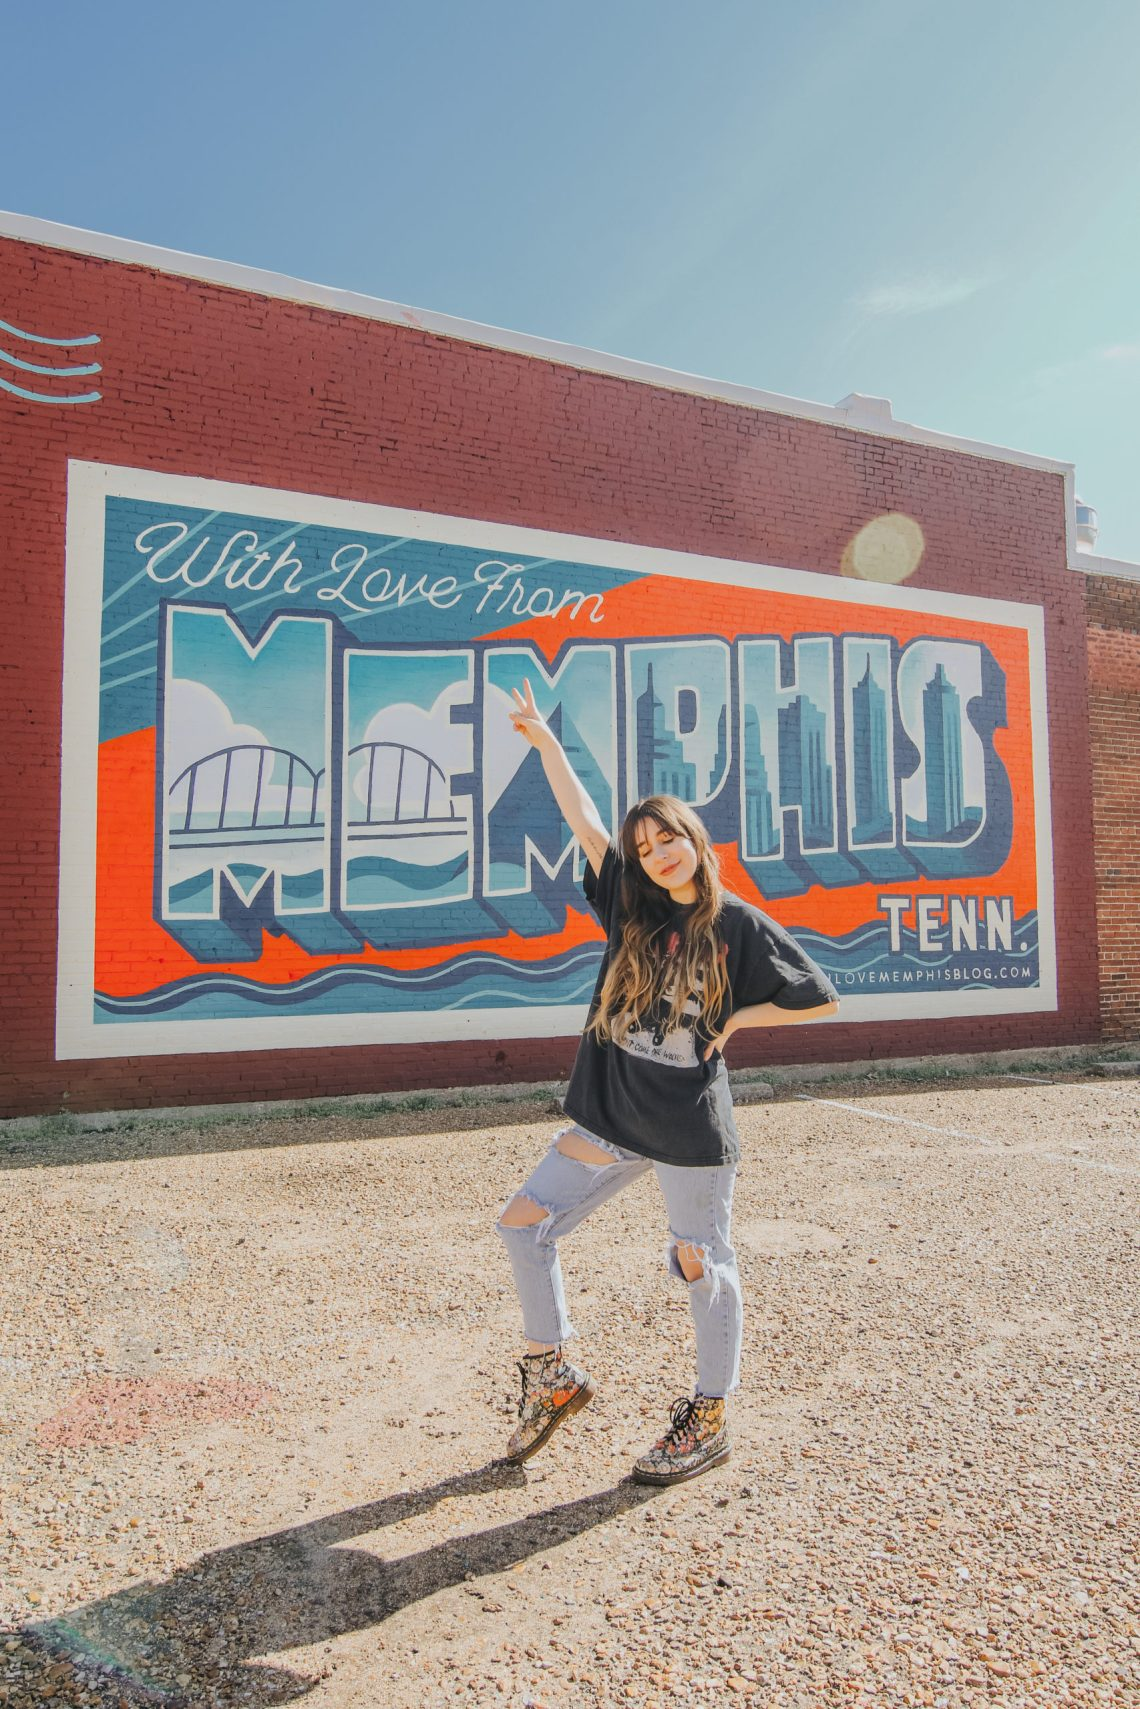 With Love From Memphis Mural, Memphis Mural, South Main Arts District, art, murals, art district, Blues, Memphis, Tennessee, Memphis Travel Guide, travel guide, The Best Instagram Spots in Memphis, travel, The Urban Darling, fashion, boho fashion, bohemian.